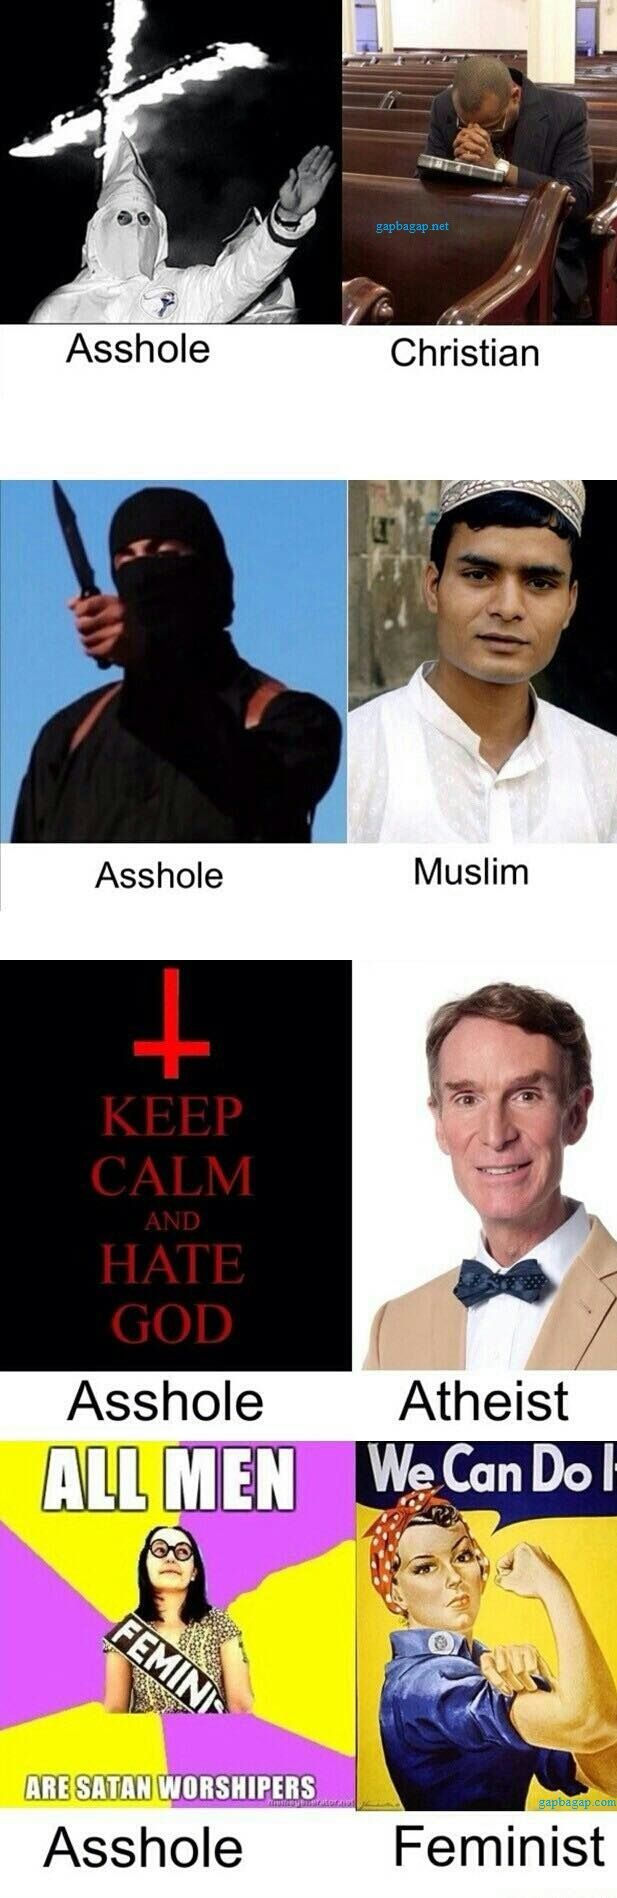 Funny Memes About Religions vs. Assholes